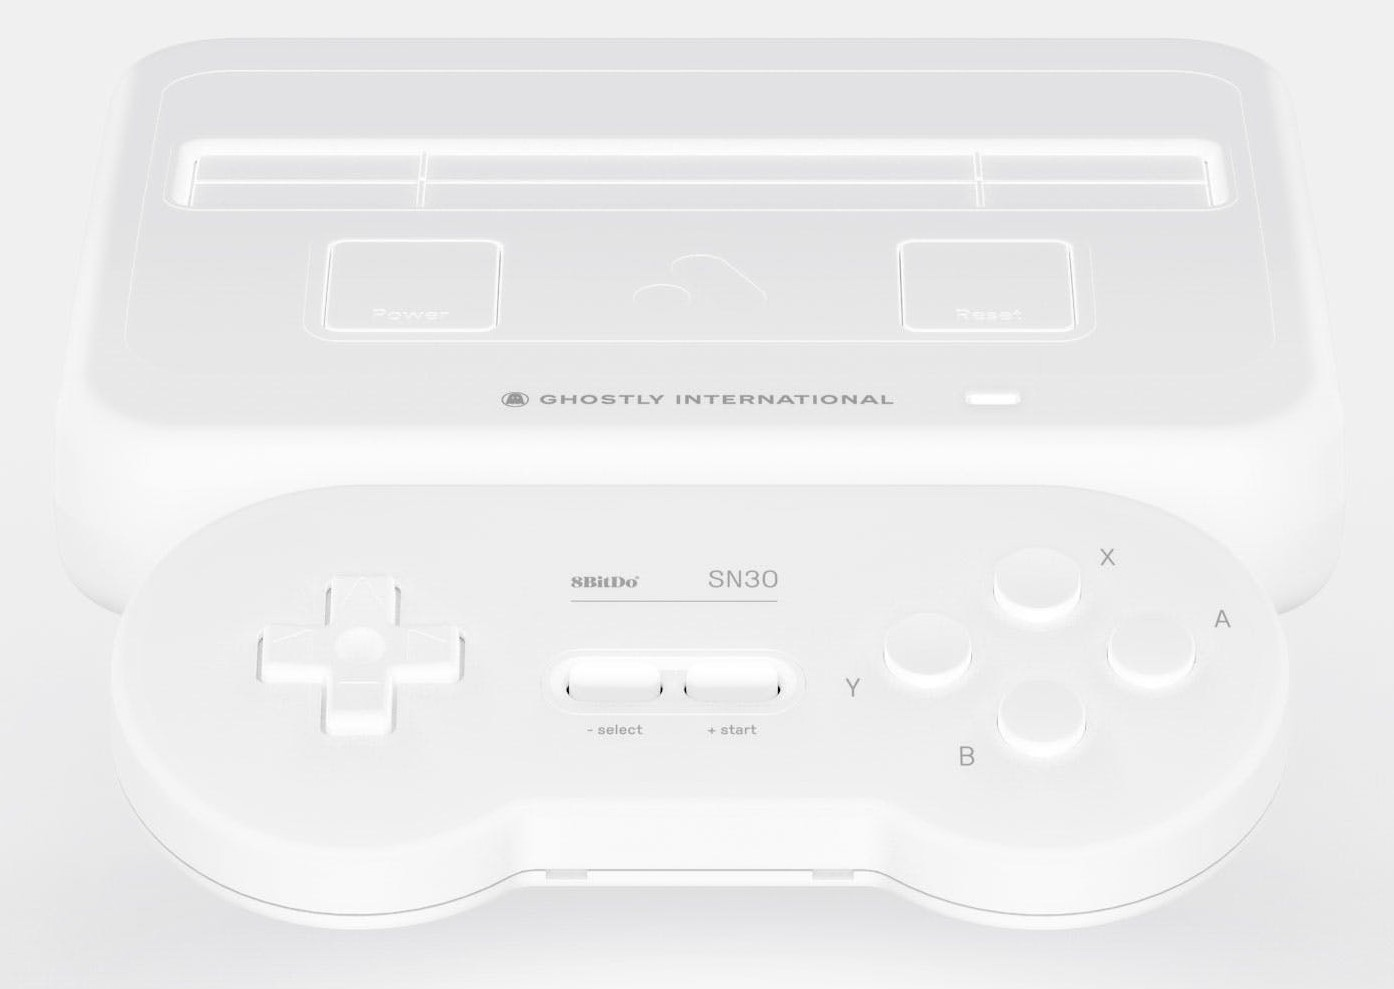 Analogue X Ghostly Super Nt